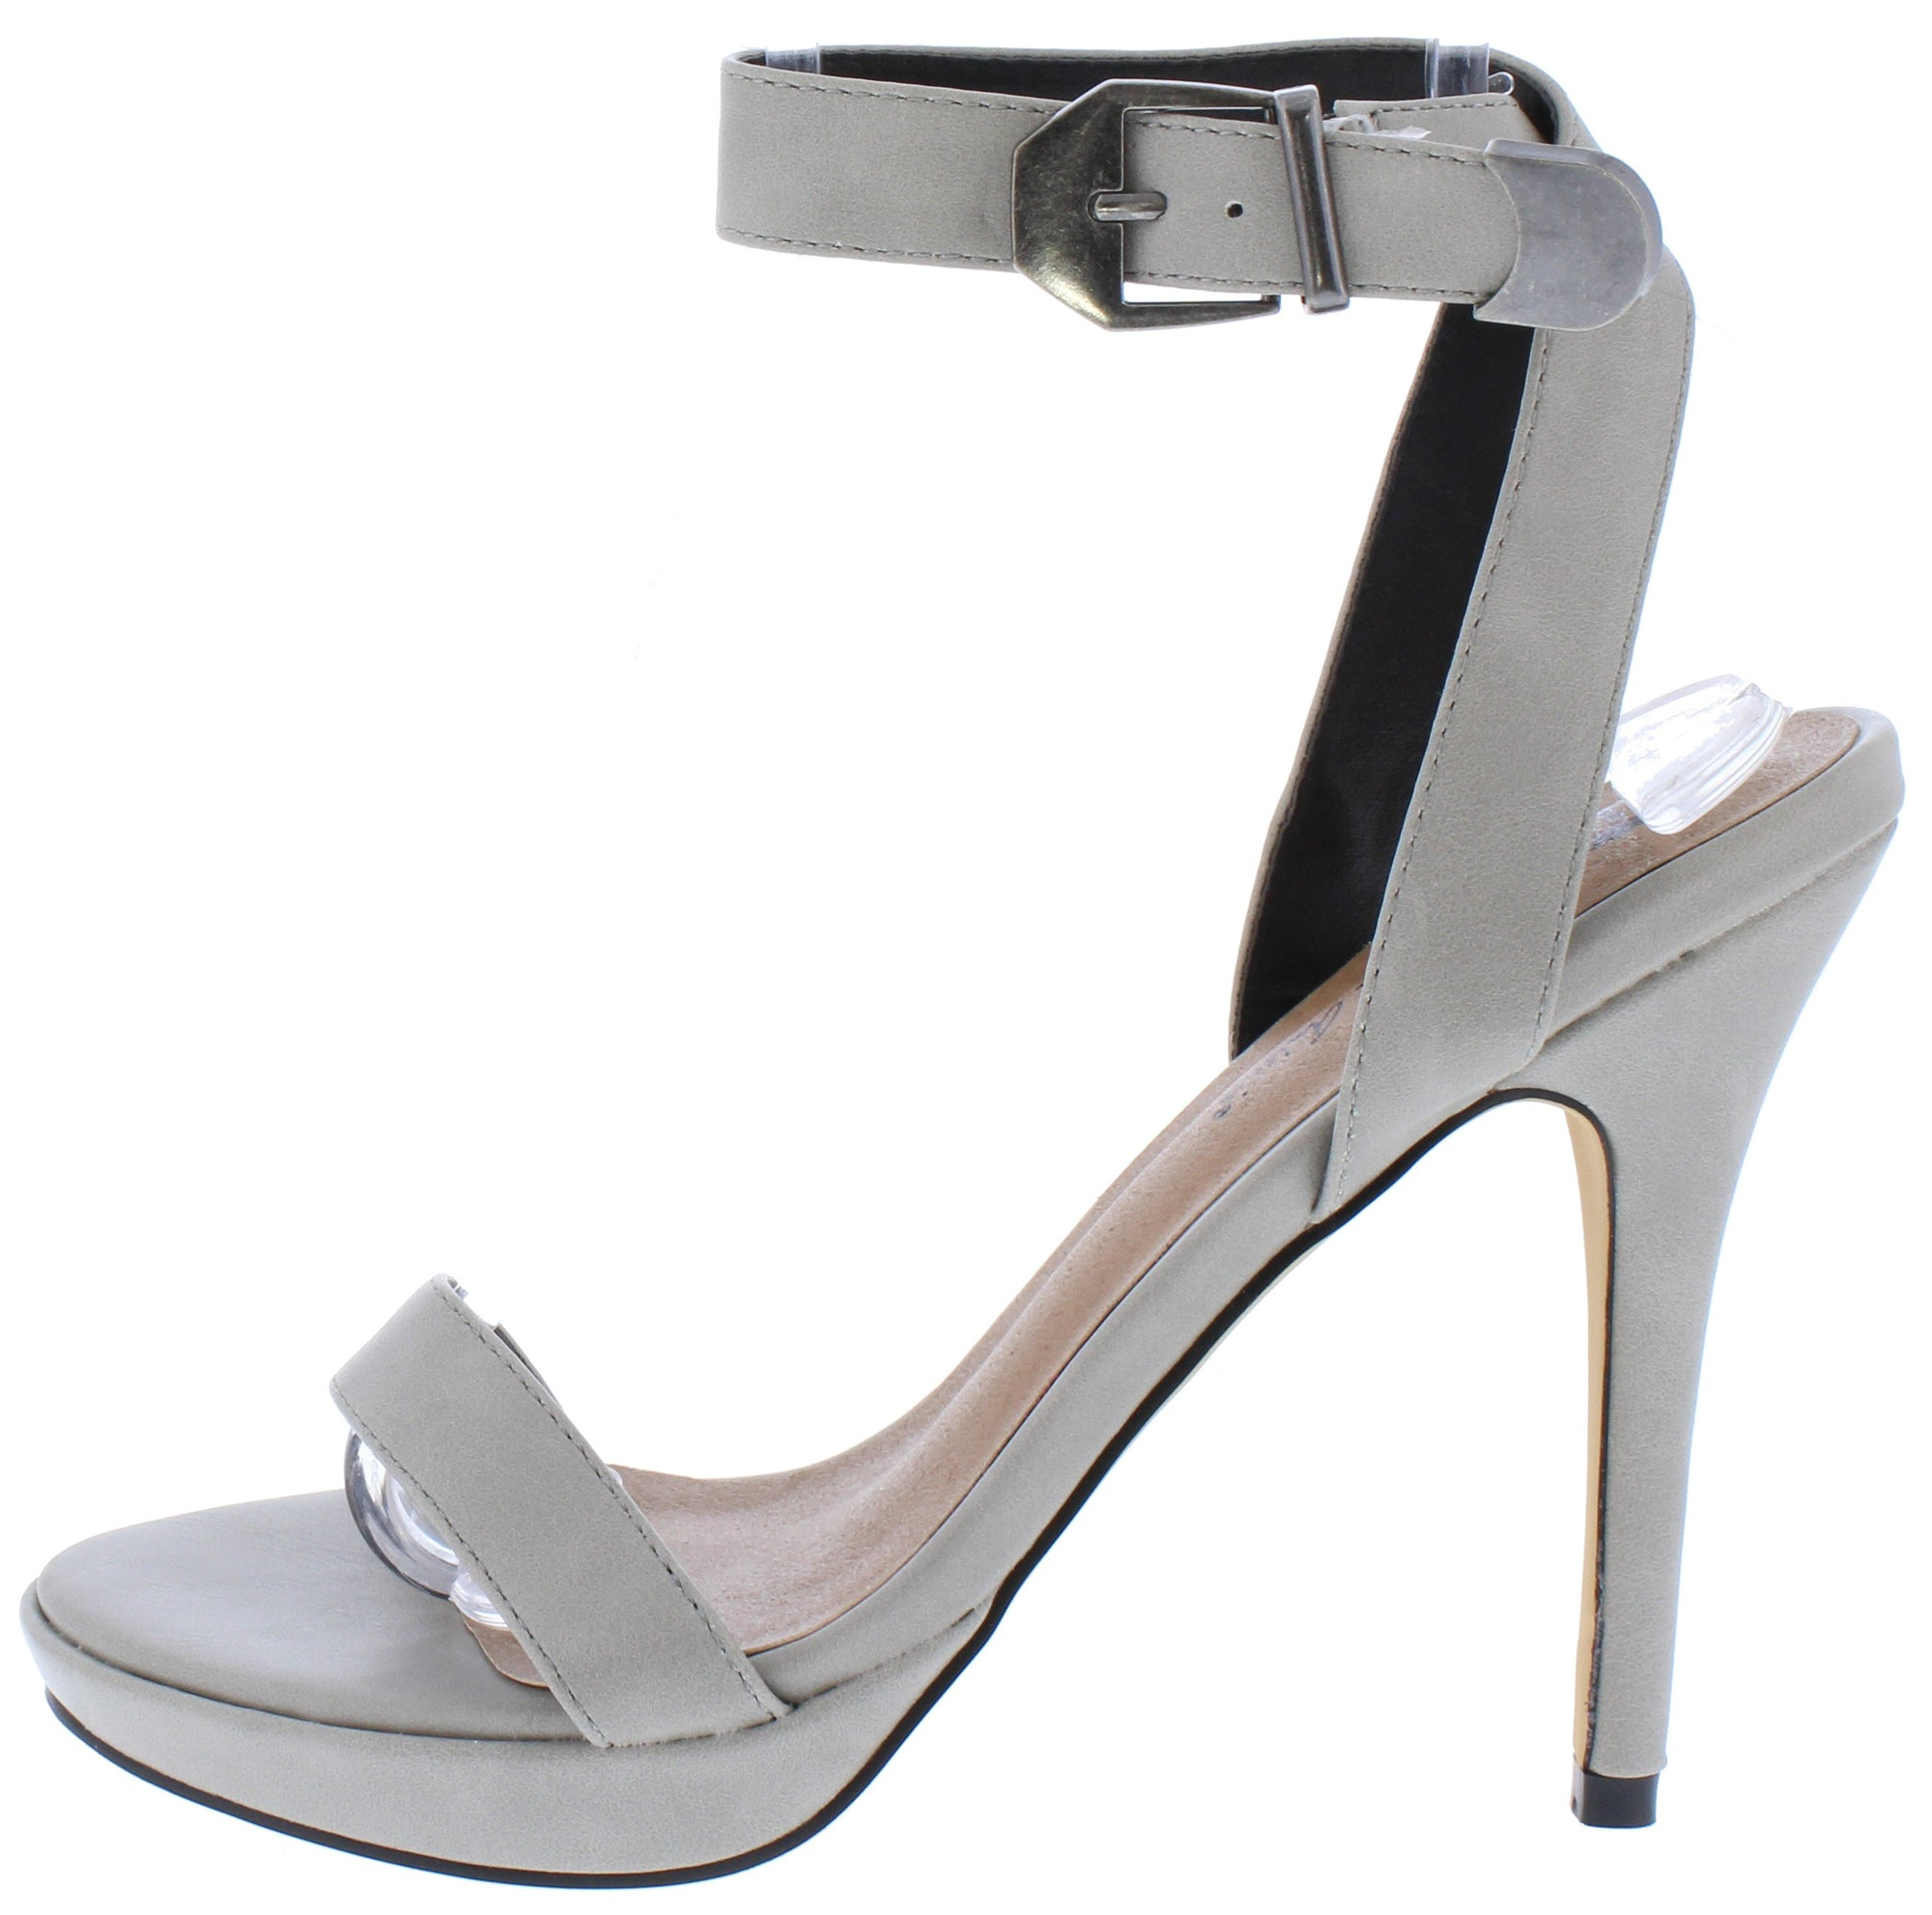 5c1af5e7f94 Mia085 Grey Open Toe Cross Back Ankle Strap Stiletto Heel - Wholesale  Fashion Shoes